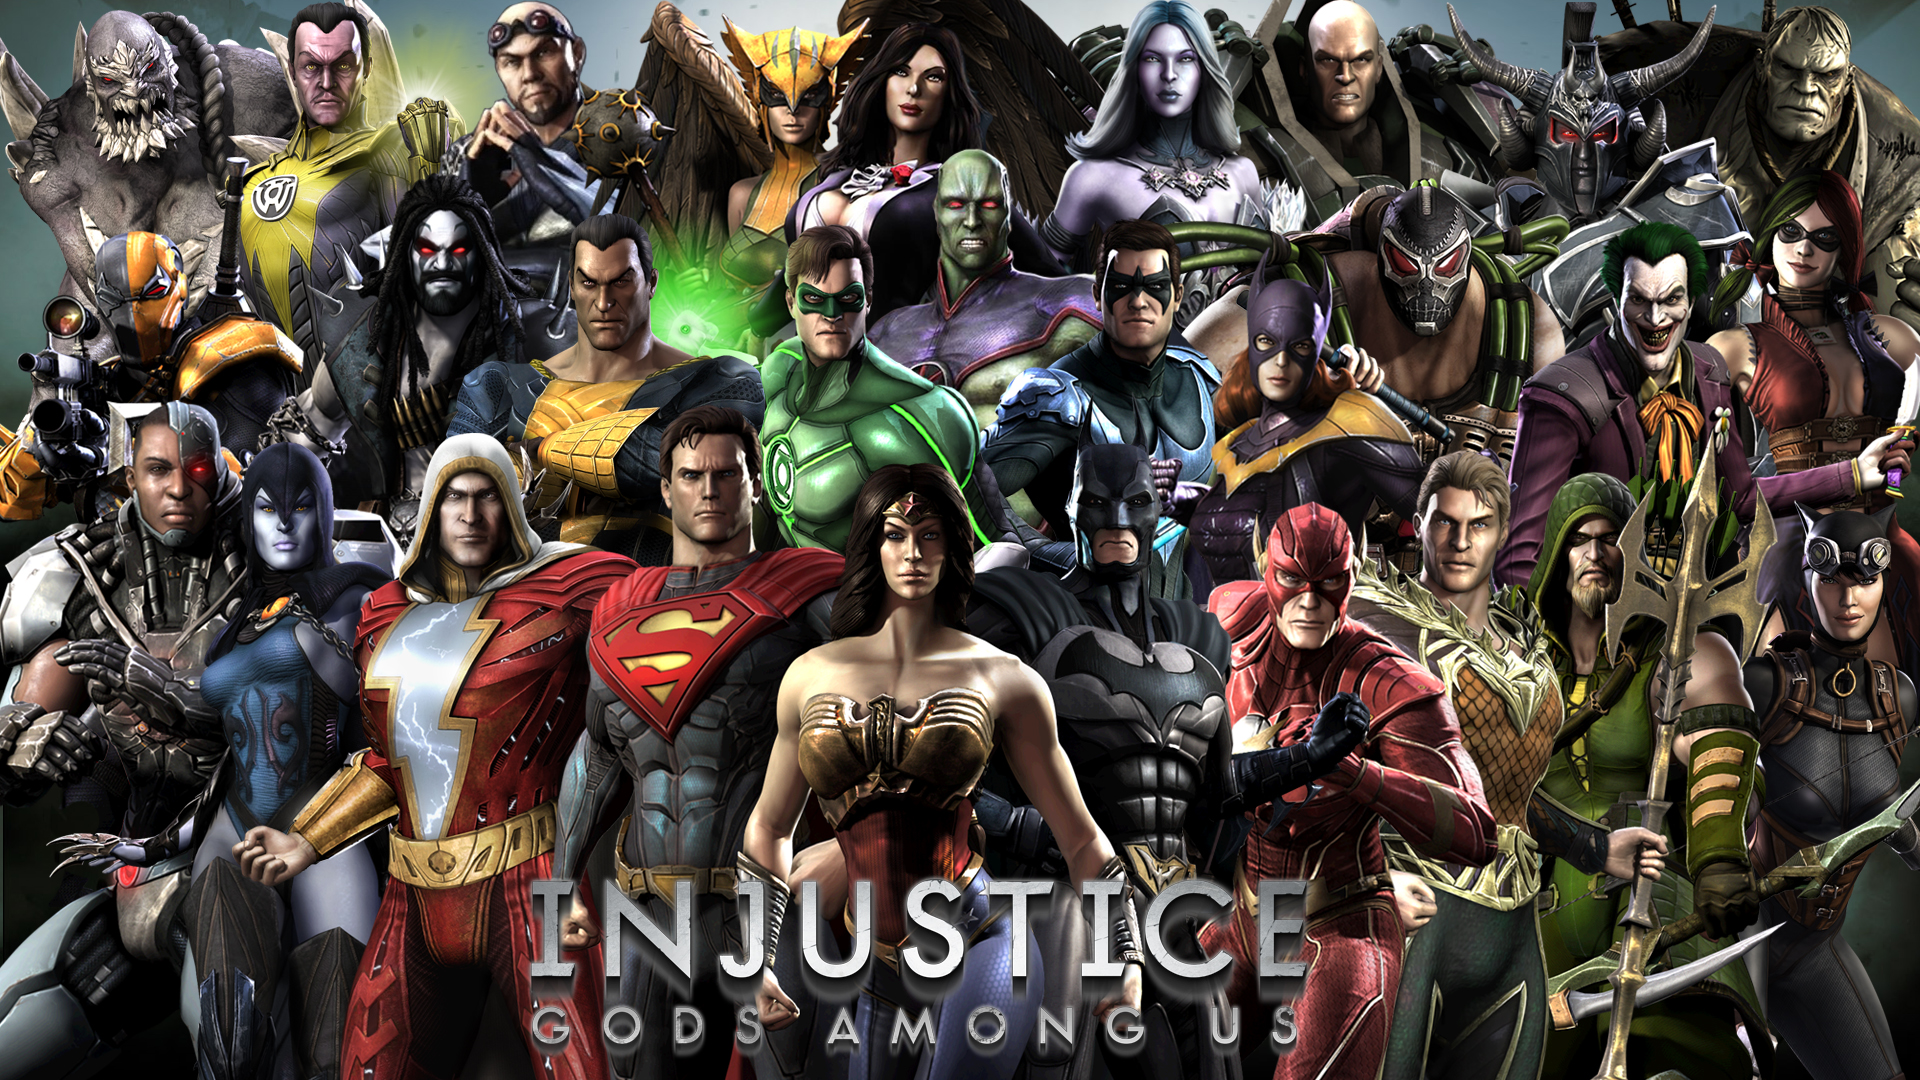 injustice-gods-among-us-hack